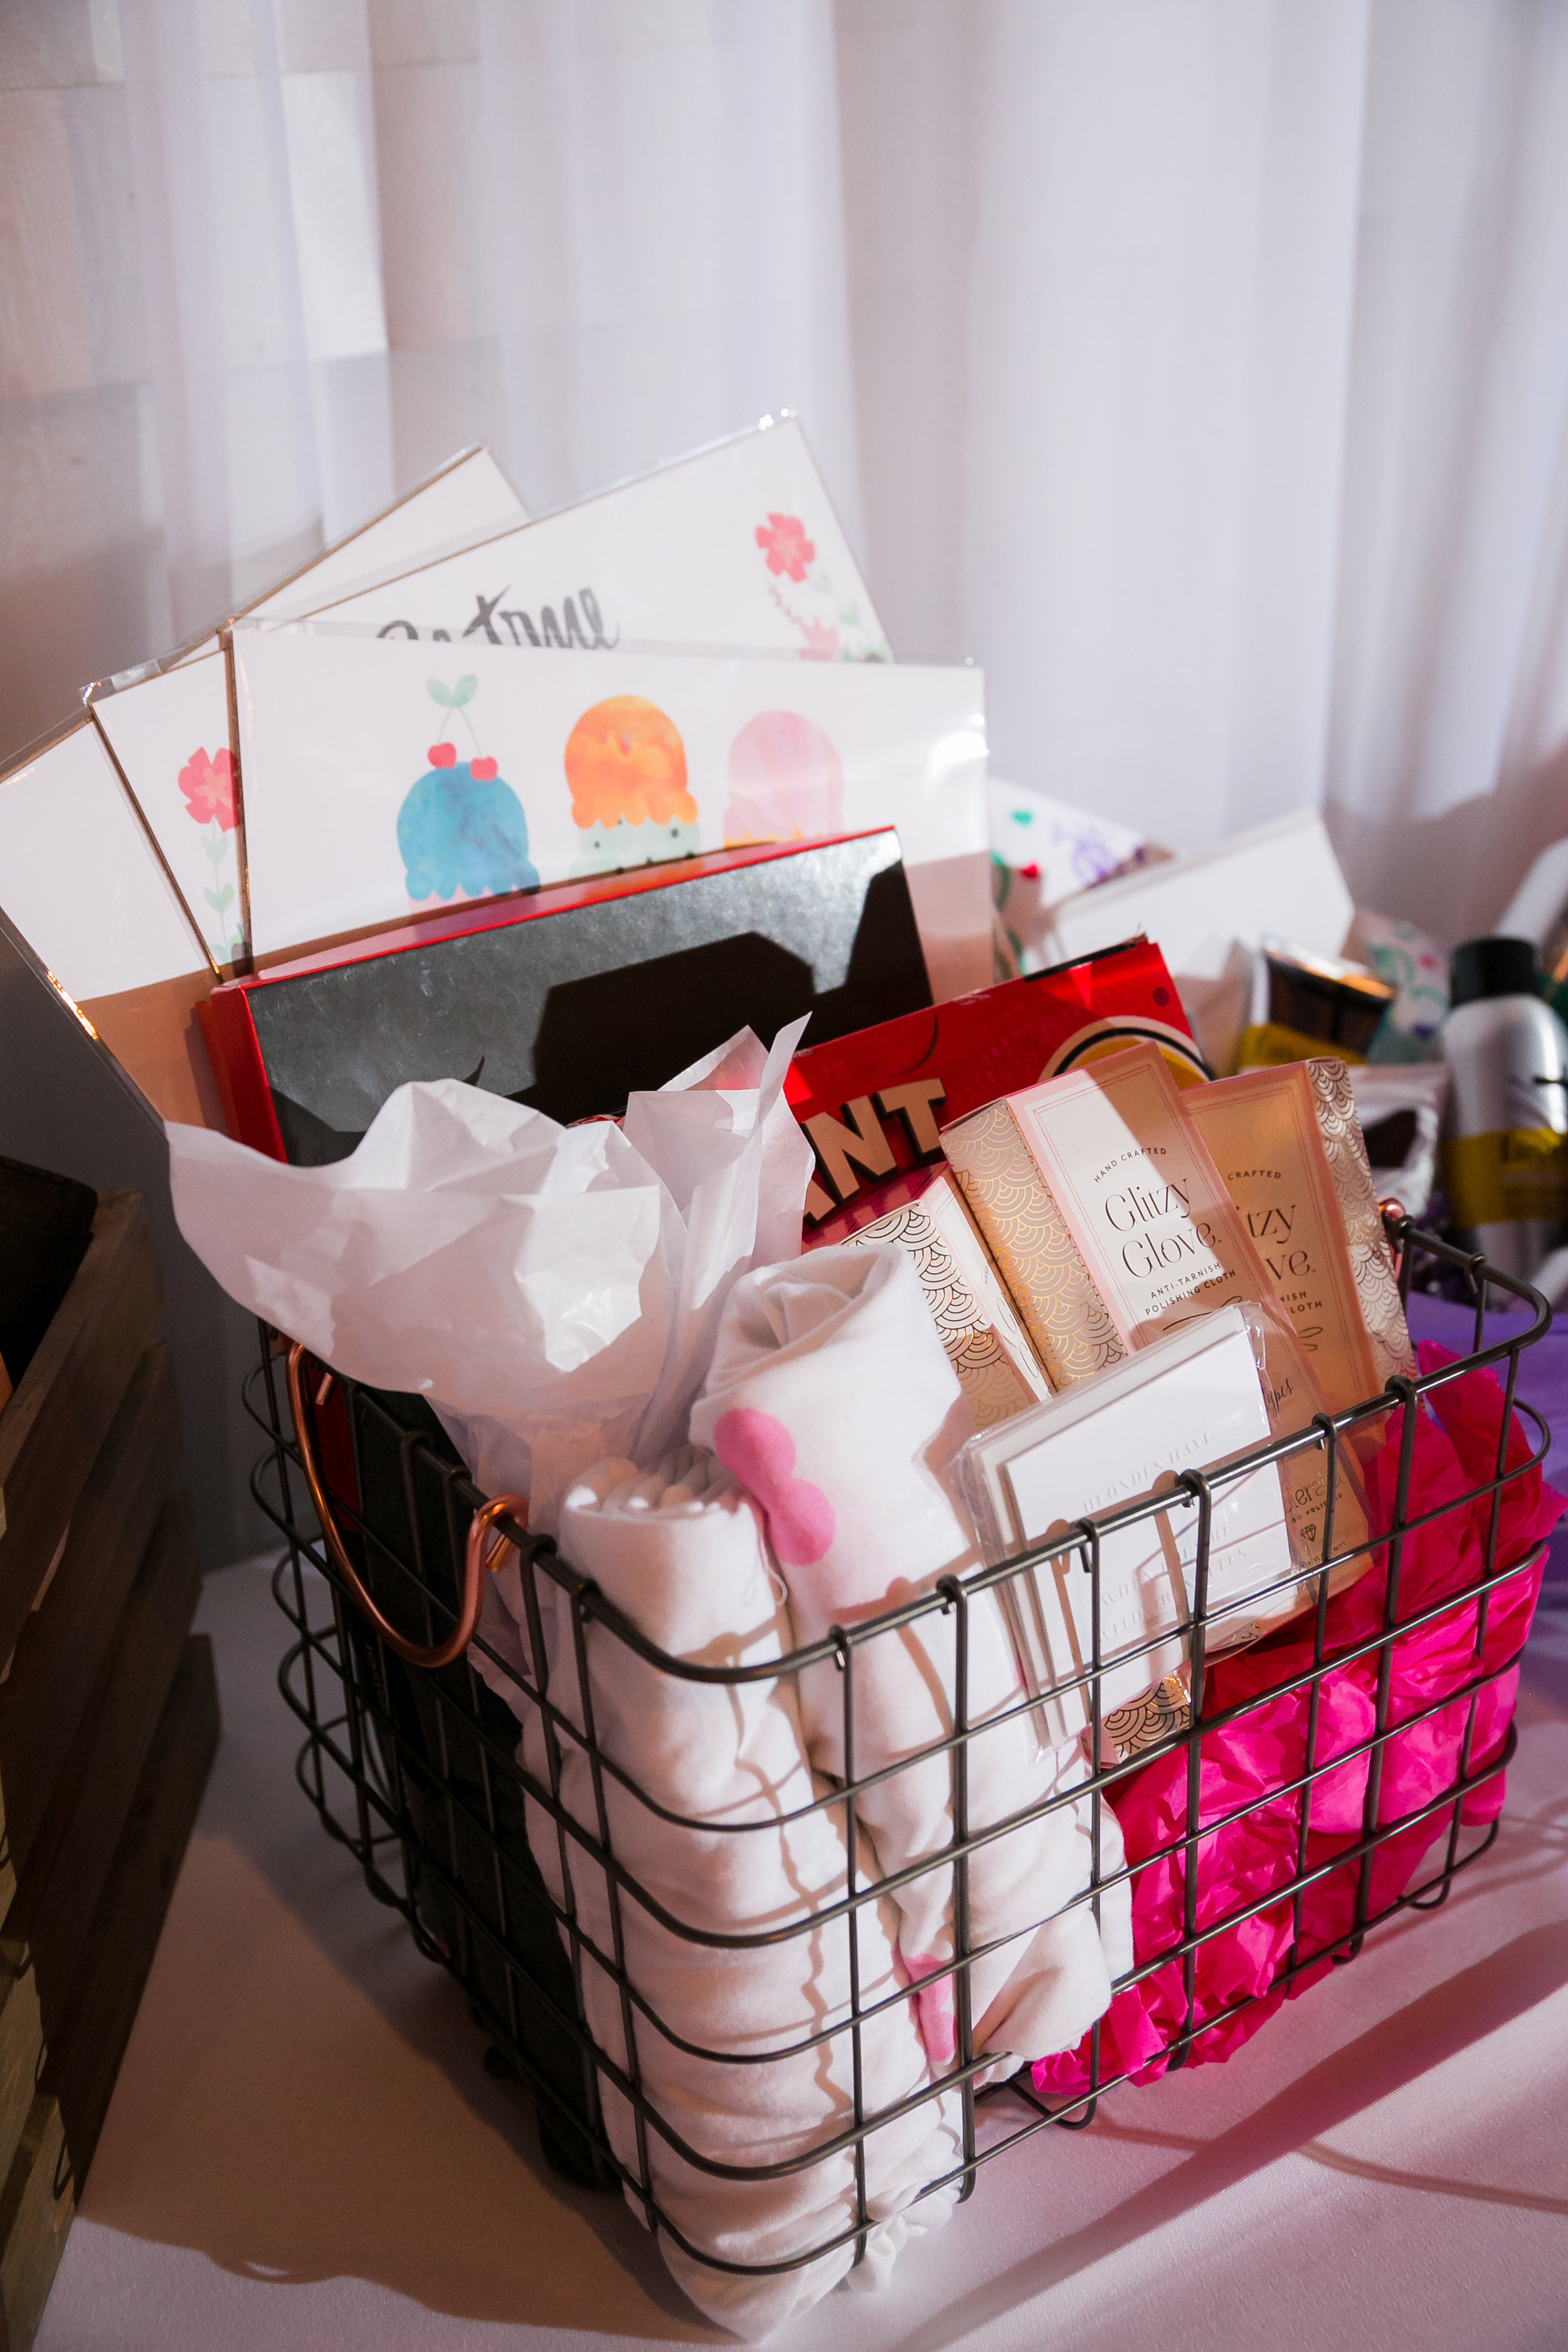 """Seven baskets in total were raffled off during the night. Our """"GIRL TALK"""" Basket included our GIRL TALK pack of poco cards,a Giant Uno game, Blaine Bowen tees, Baublerella's Glitzy Gloves,  Katy Girl Designs  prints and a huge box of luxury chocolates by  Kate Weiser ."""